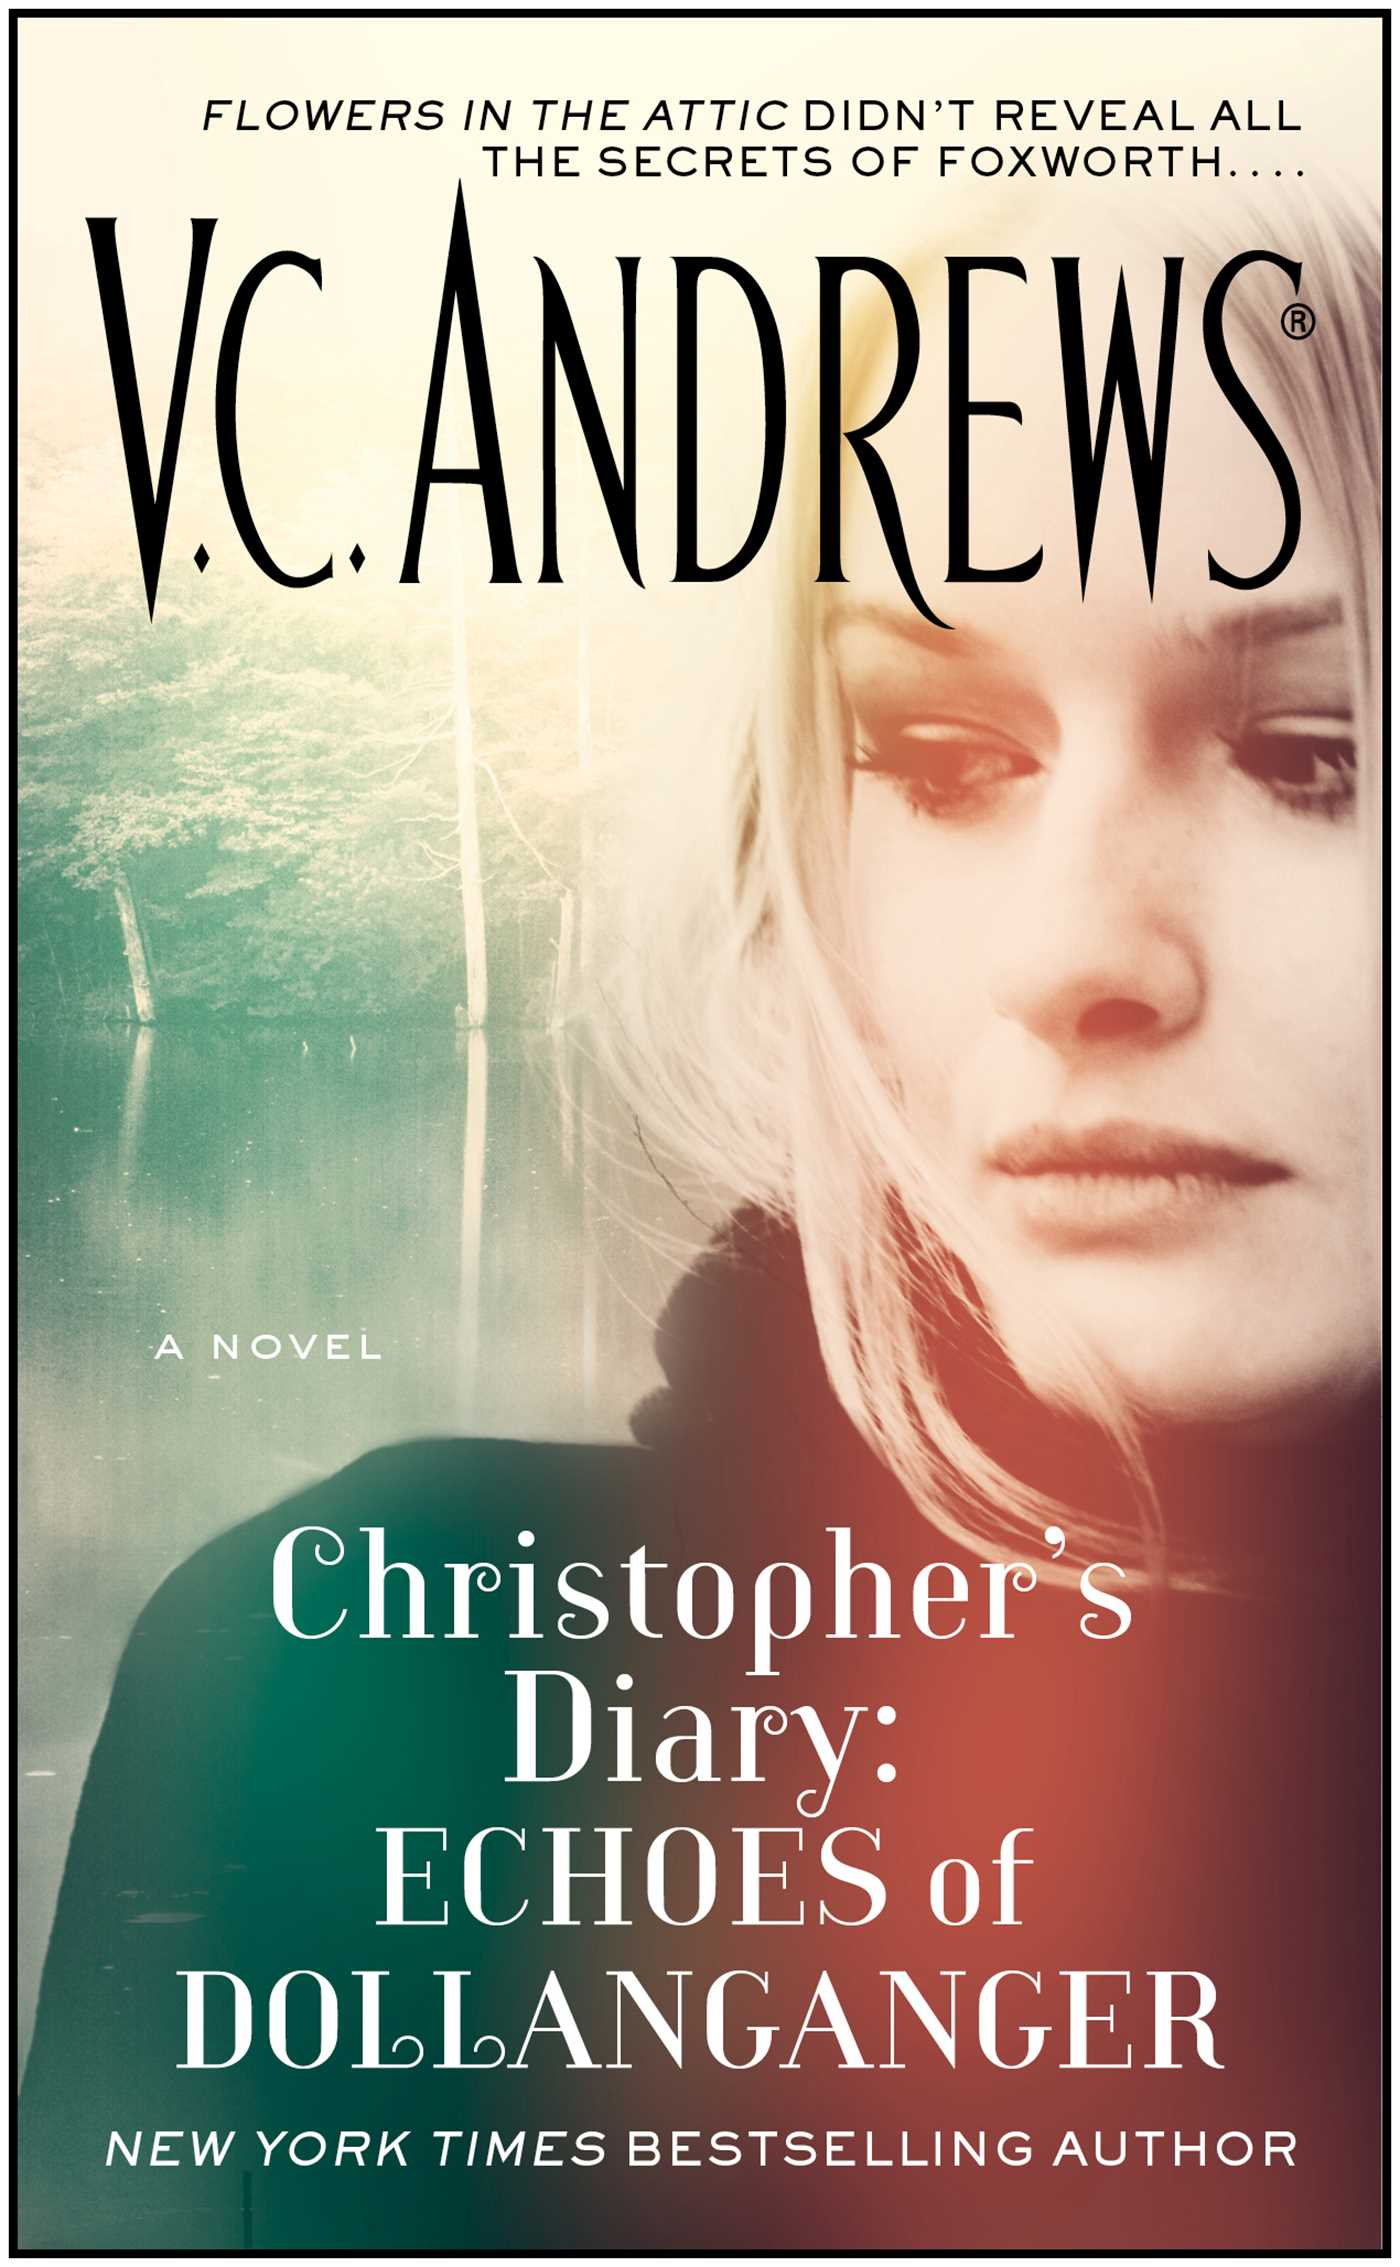 Christophers-diary-echoes-of-dollanganger-9781476790626_hr